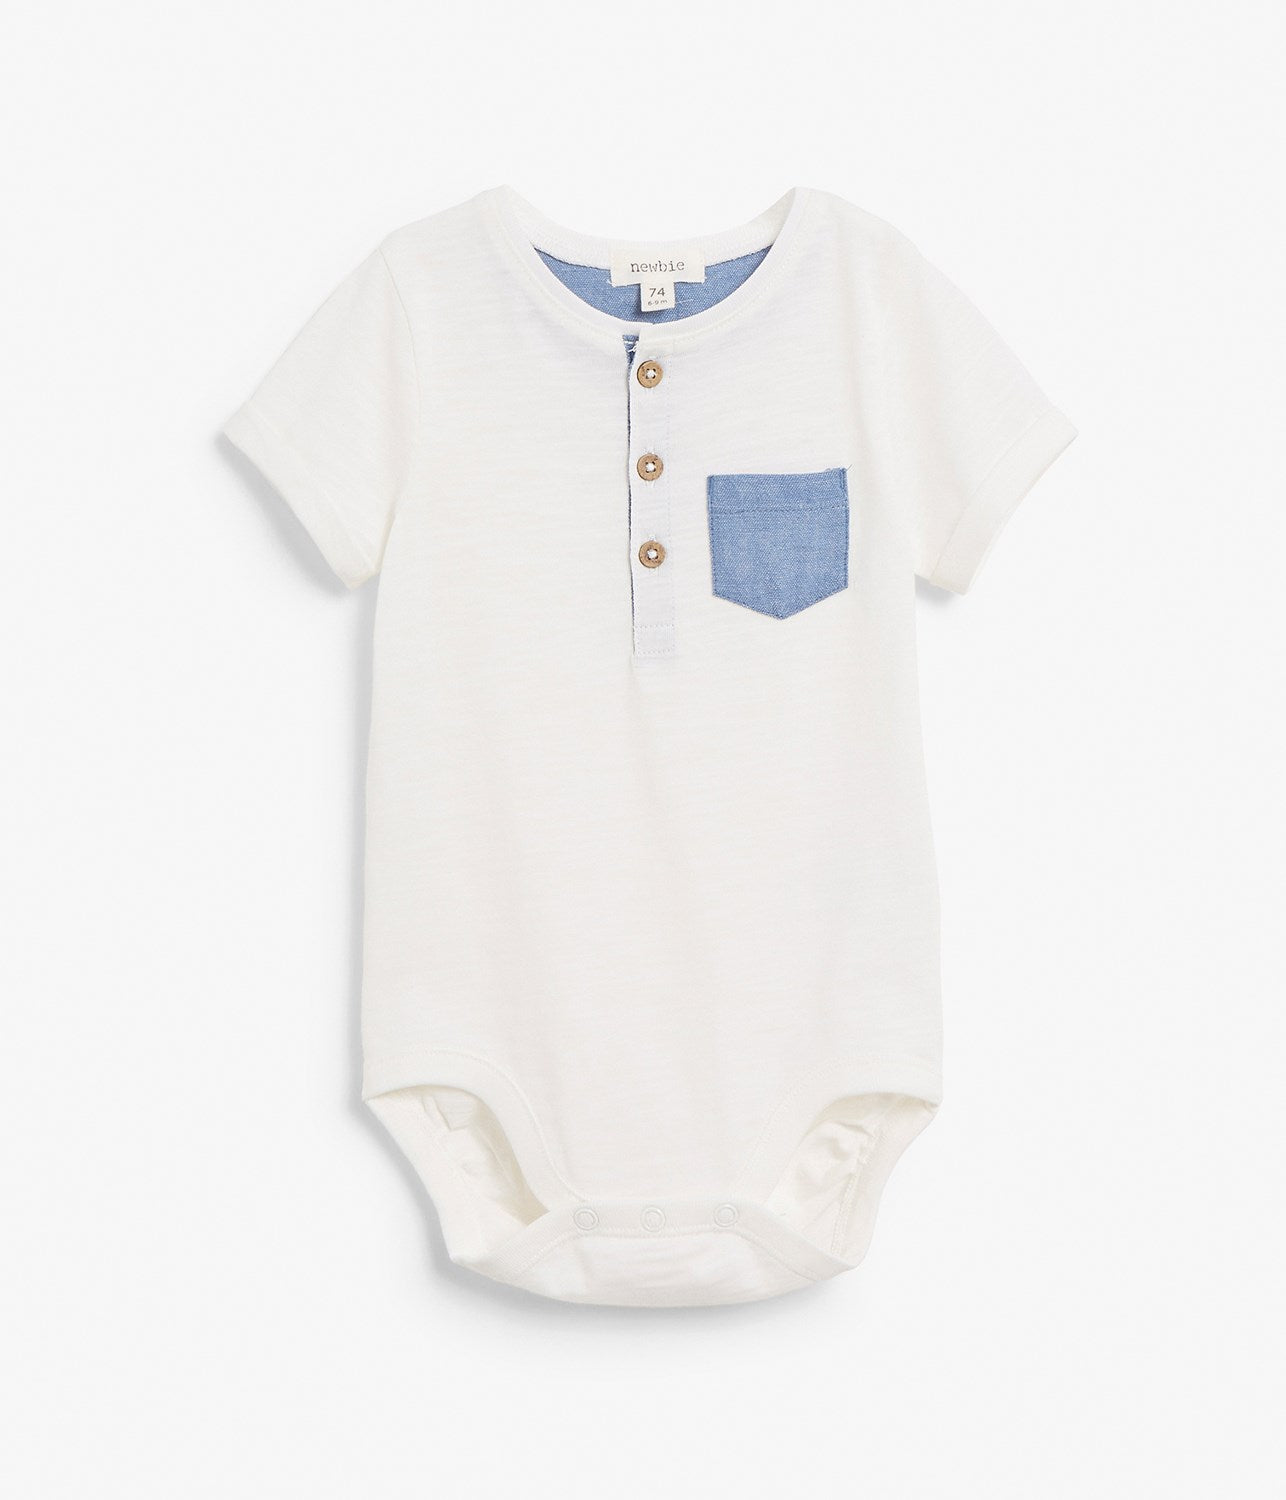 Baby body with feature pocket